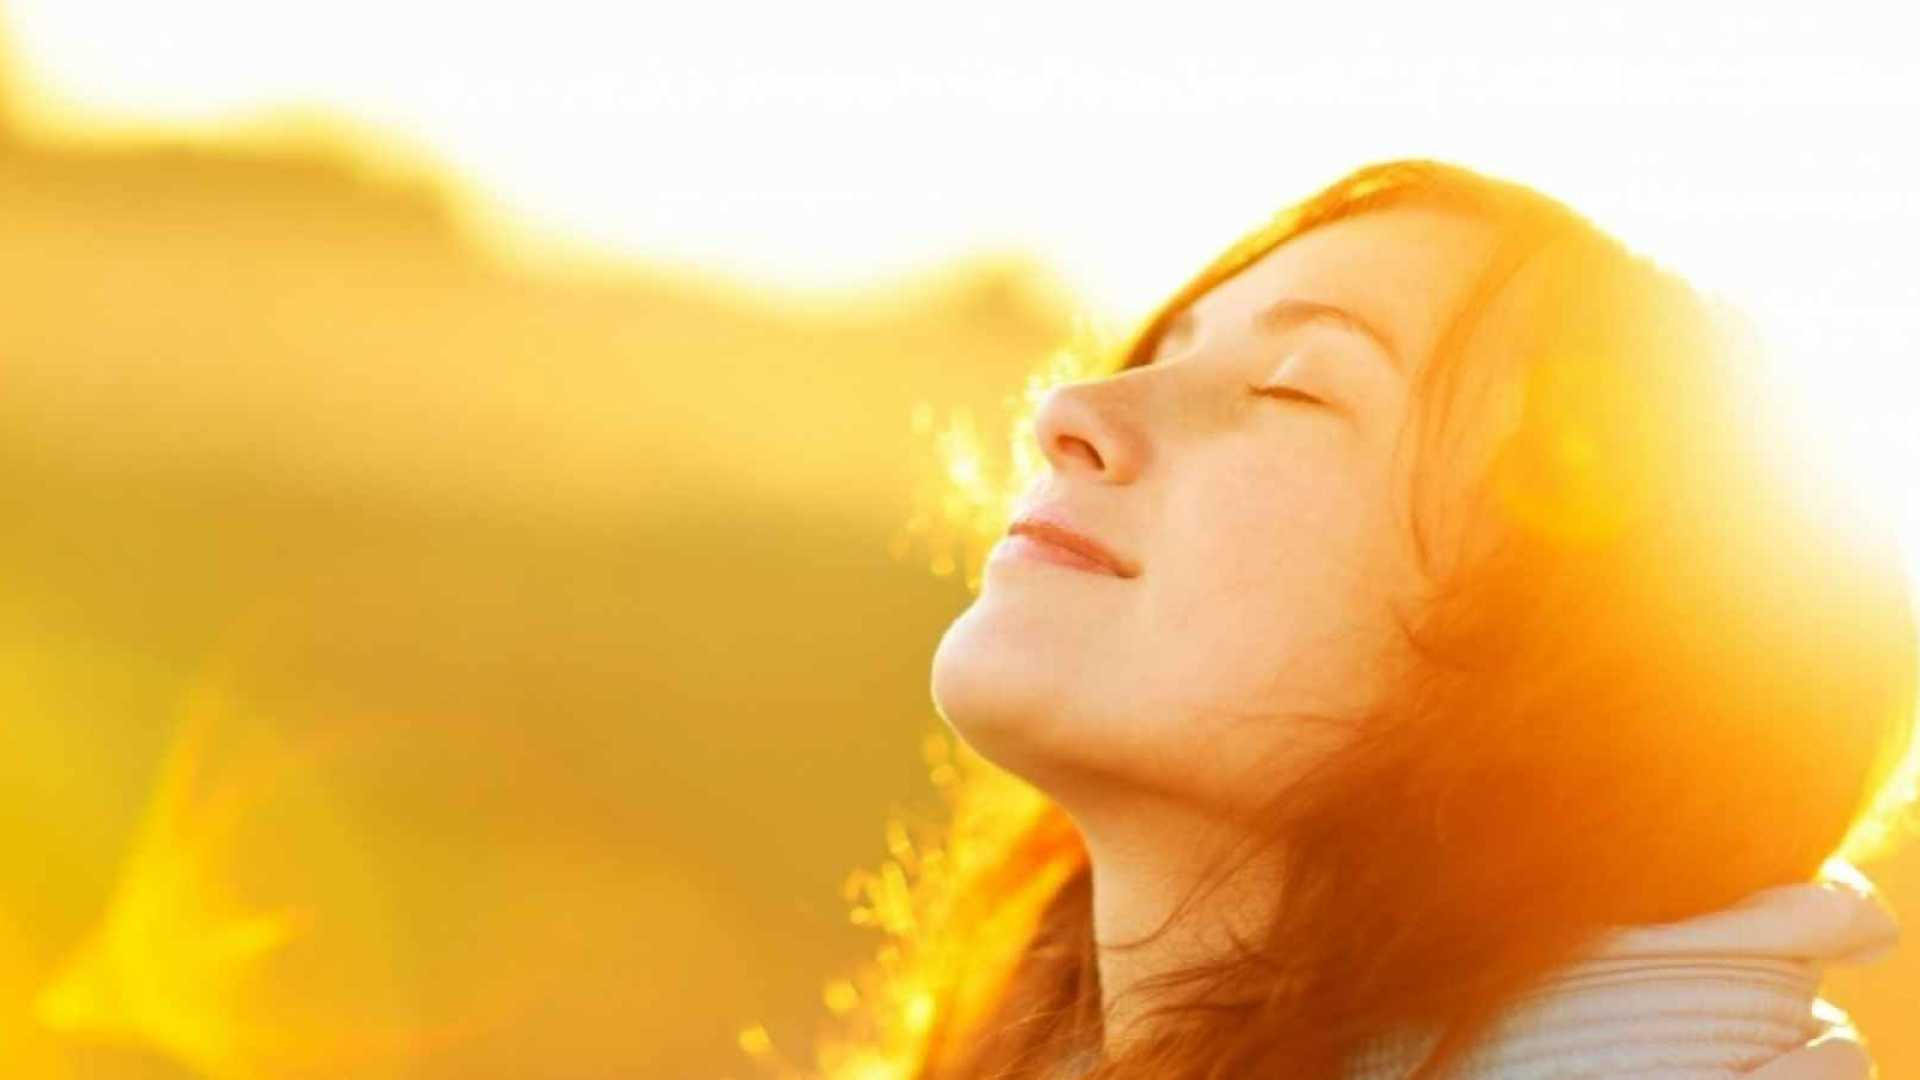 9 Things Super Successful People Do Every Day to Be Happy